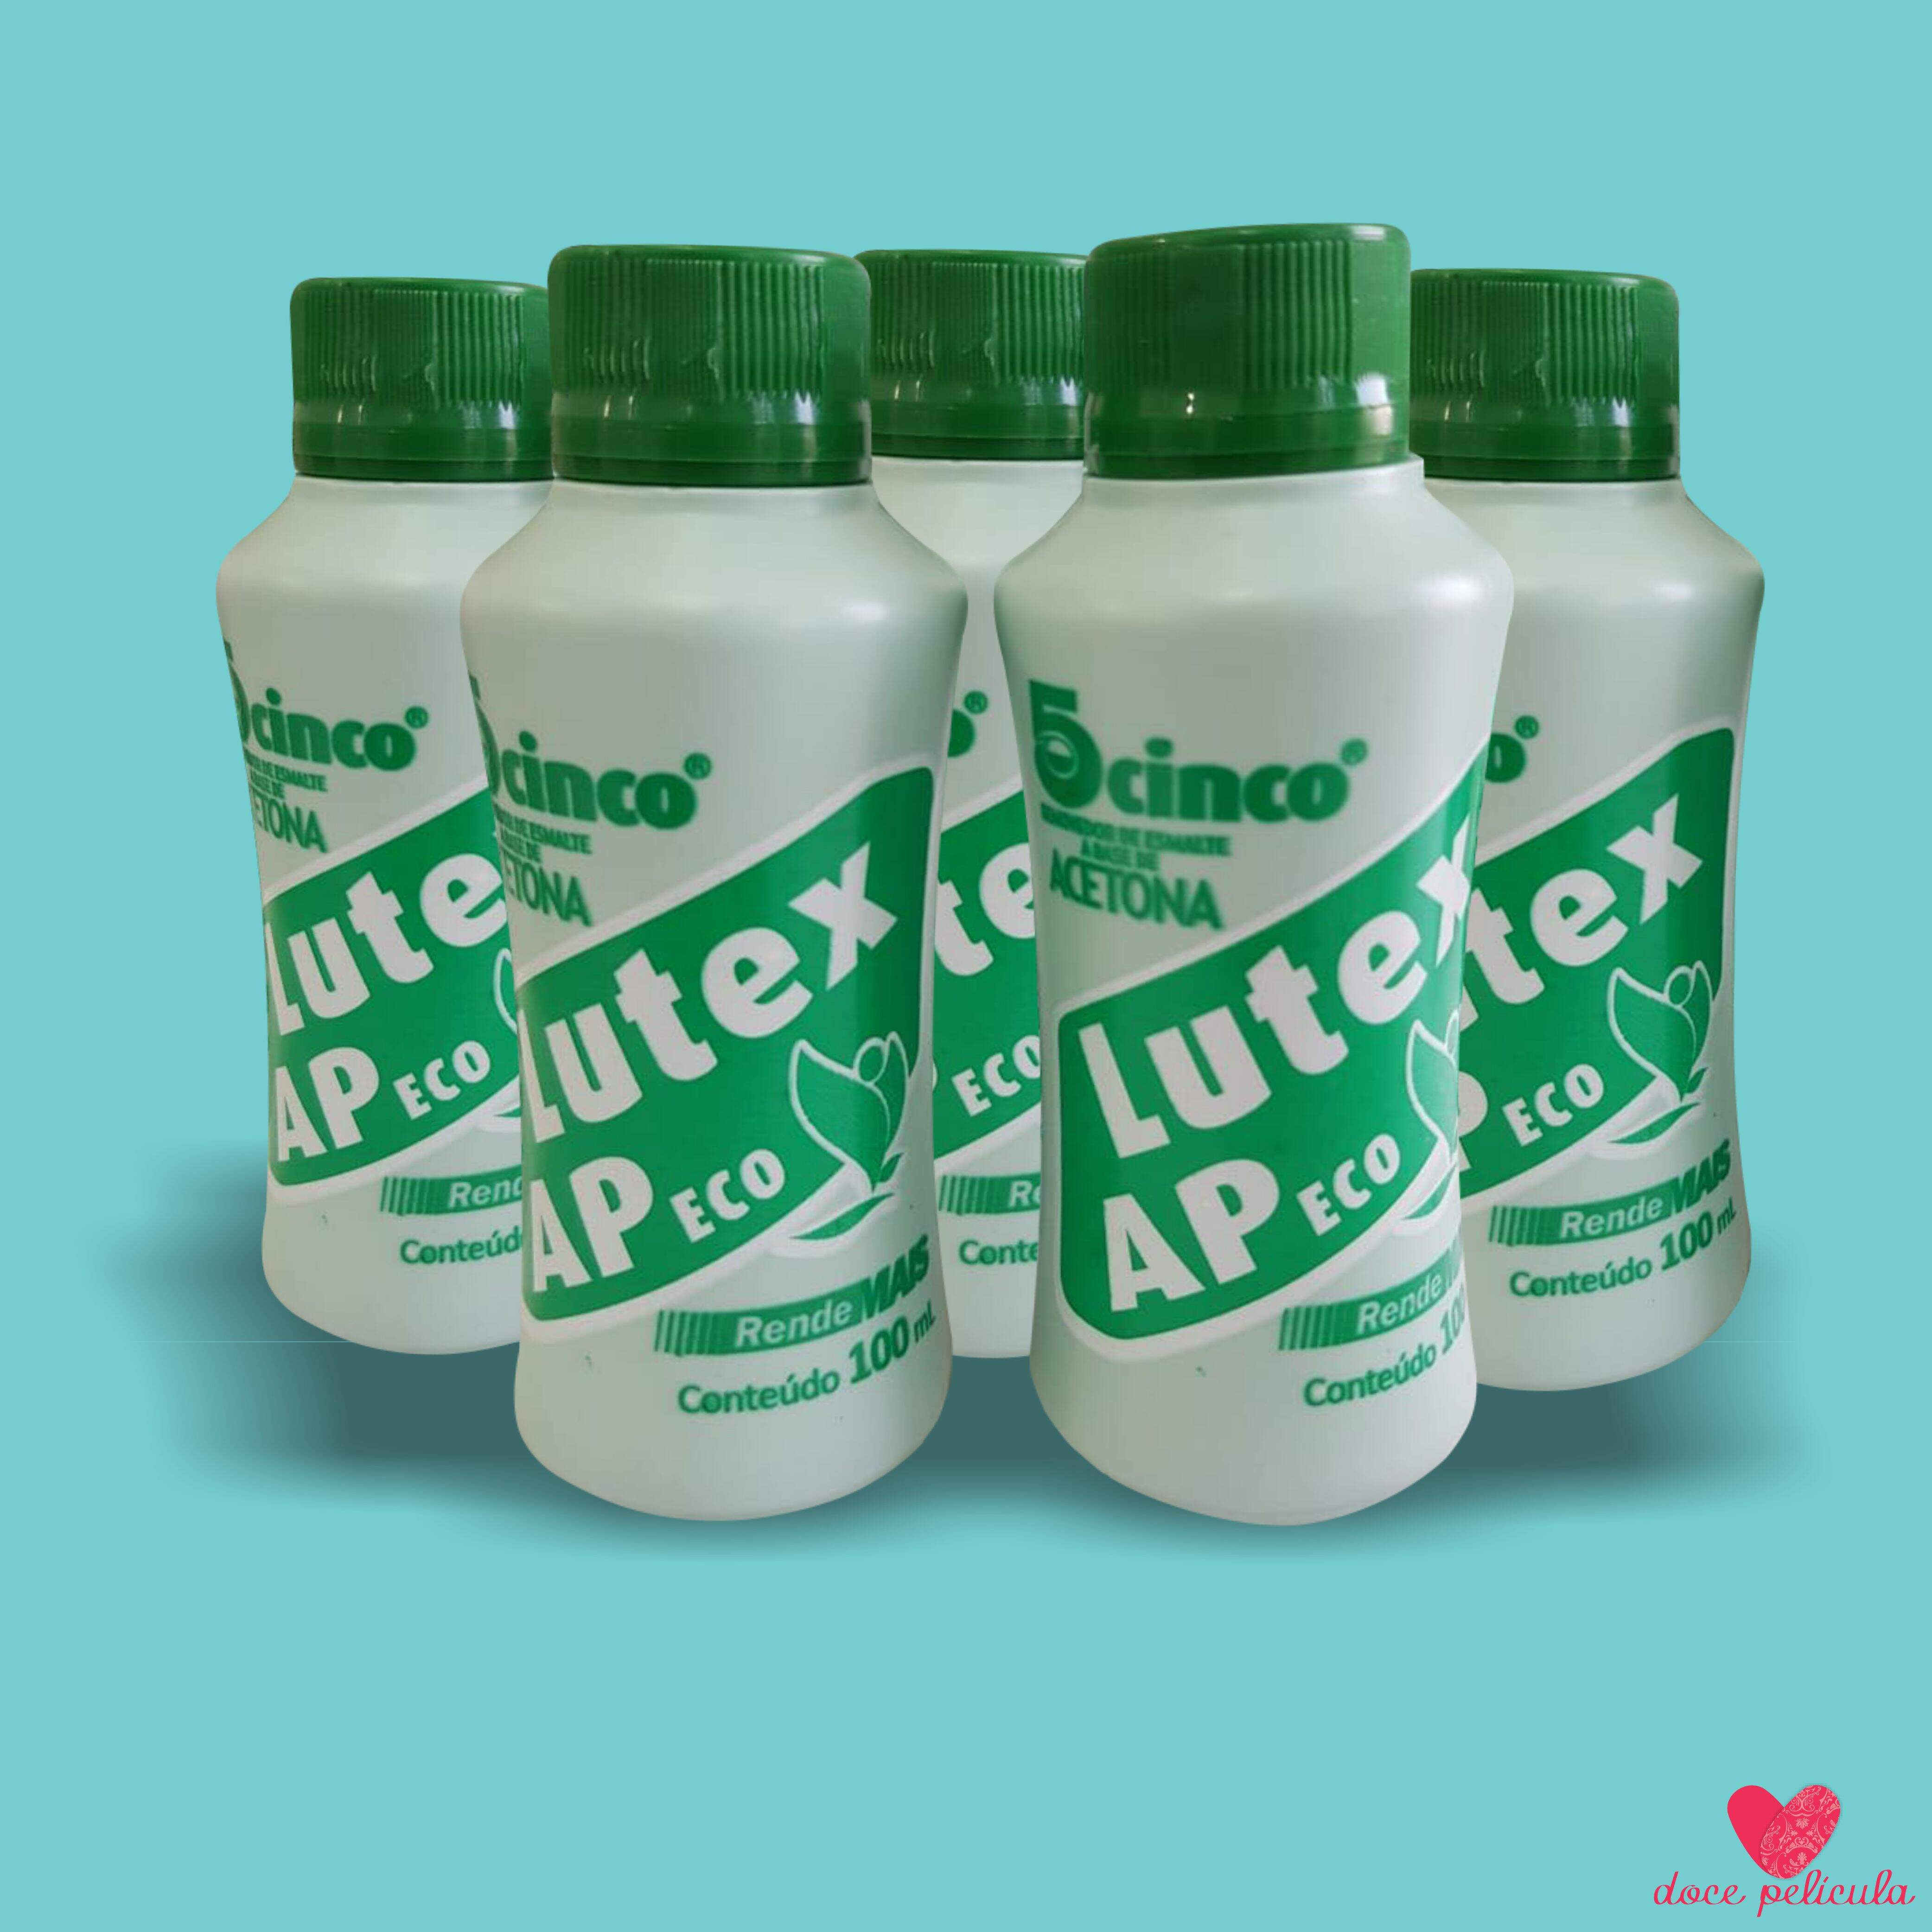 KIT COM 5 UN ACETONA LUTEX 100 ml